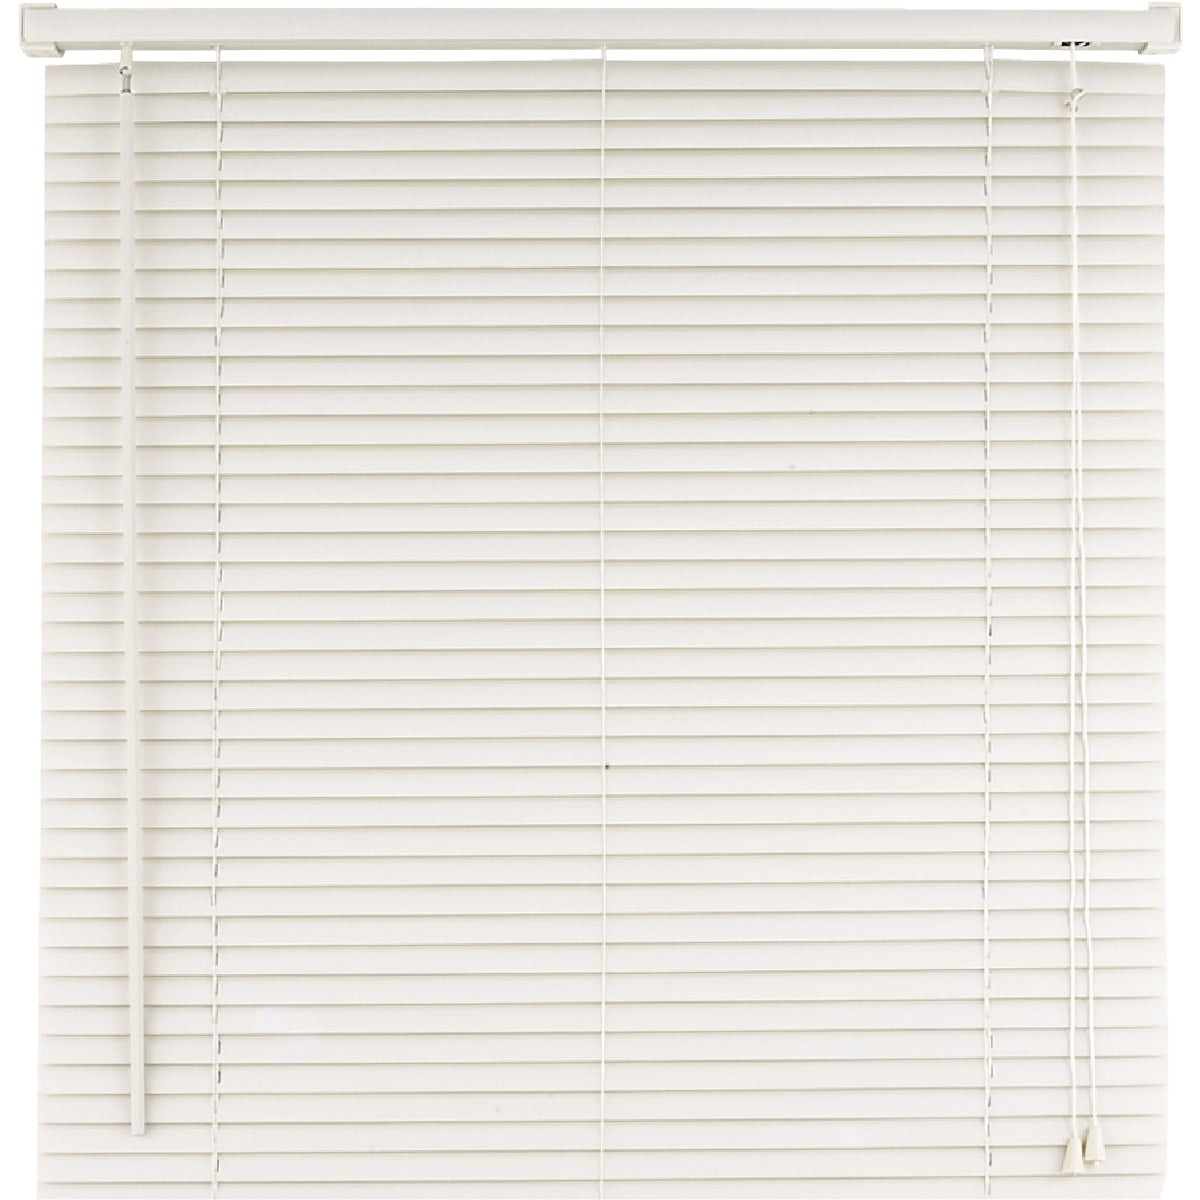 27X64 WHITE BLIND - 15034 by Lotus Wind Incom